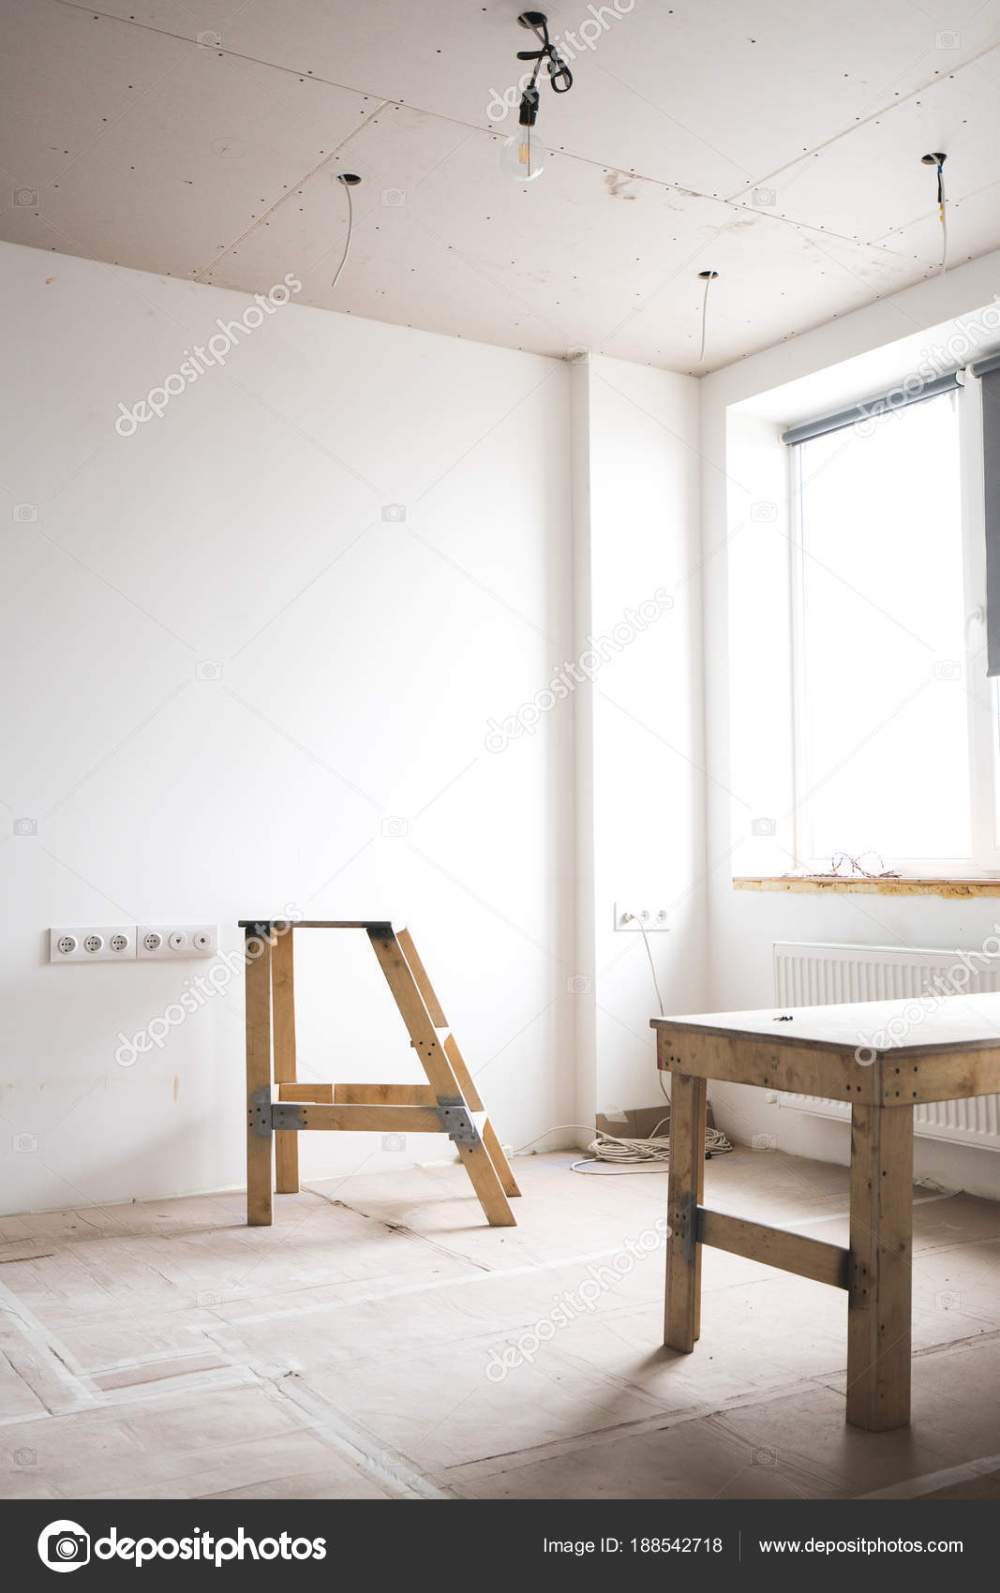 medium resolution of two wooden ladders in a white interior bright room with fresh plastered walls wiring and working with electricity in the house photo by shuterdima